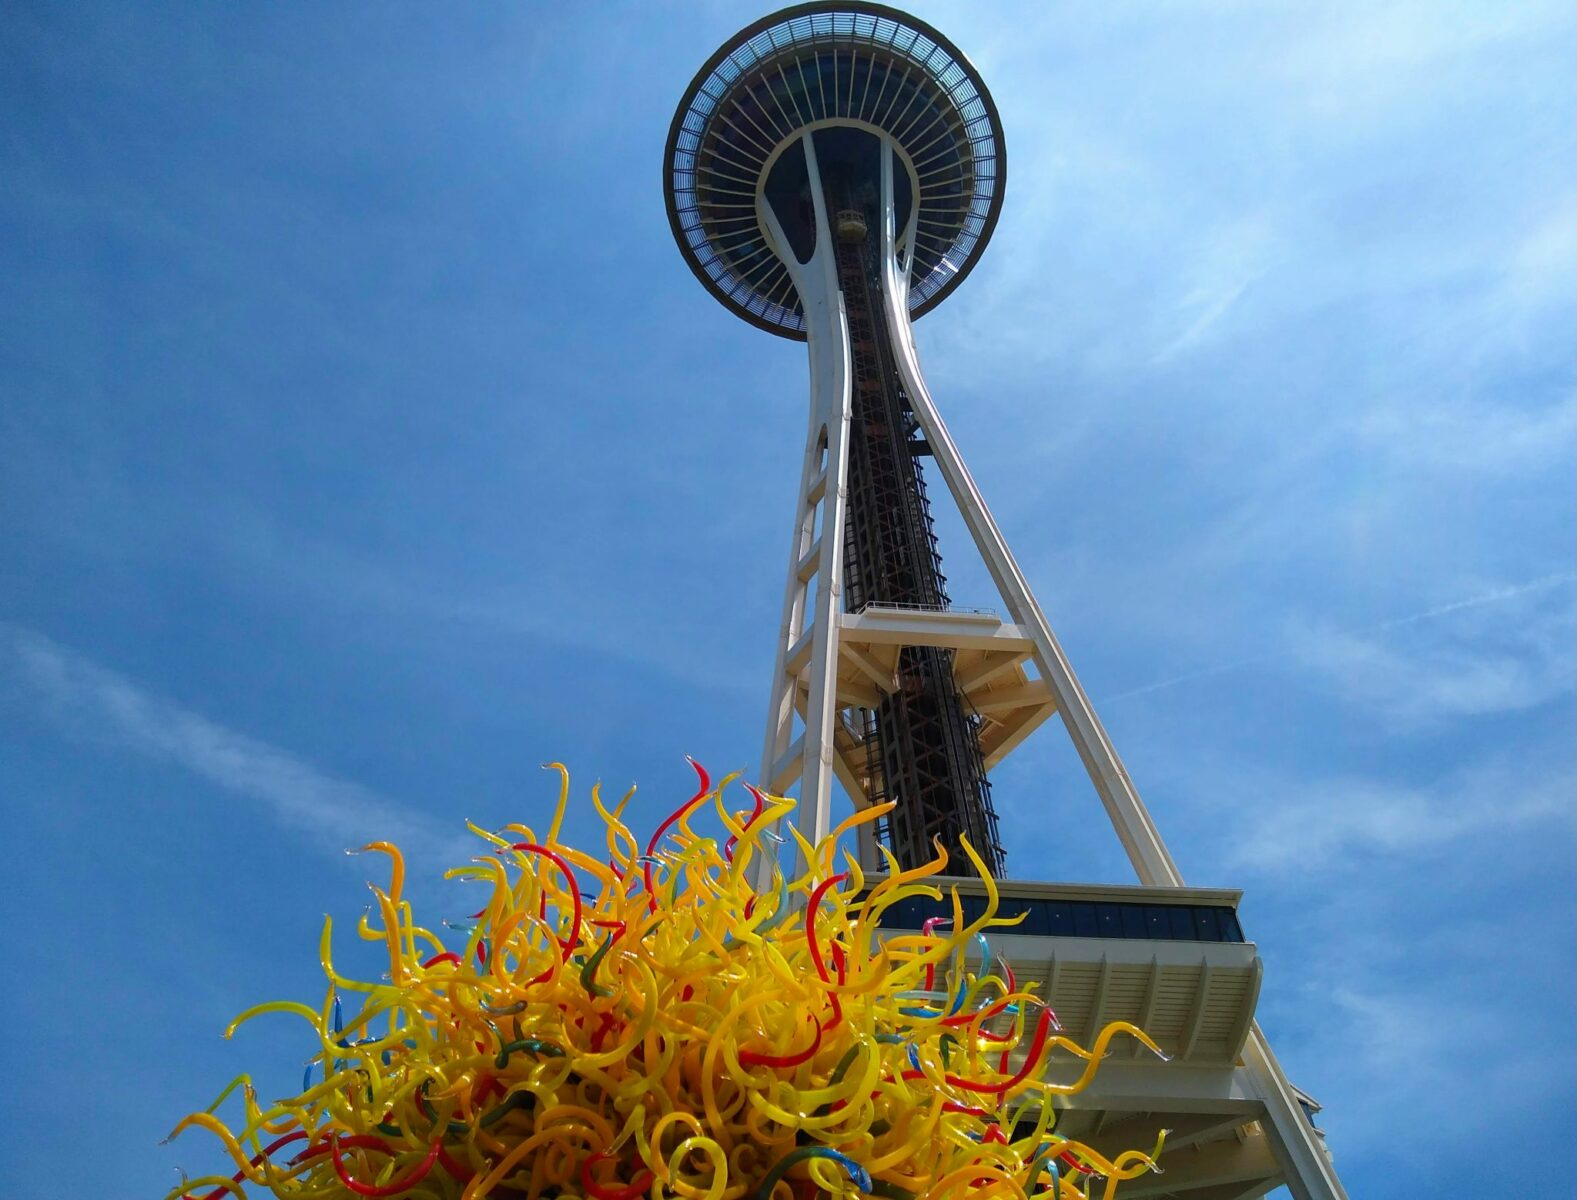 The Space Needle against the blue sky with a yellow glass sculpture in the foreground.